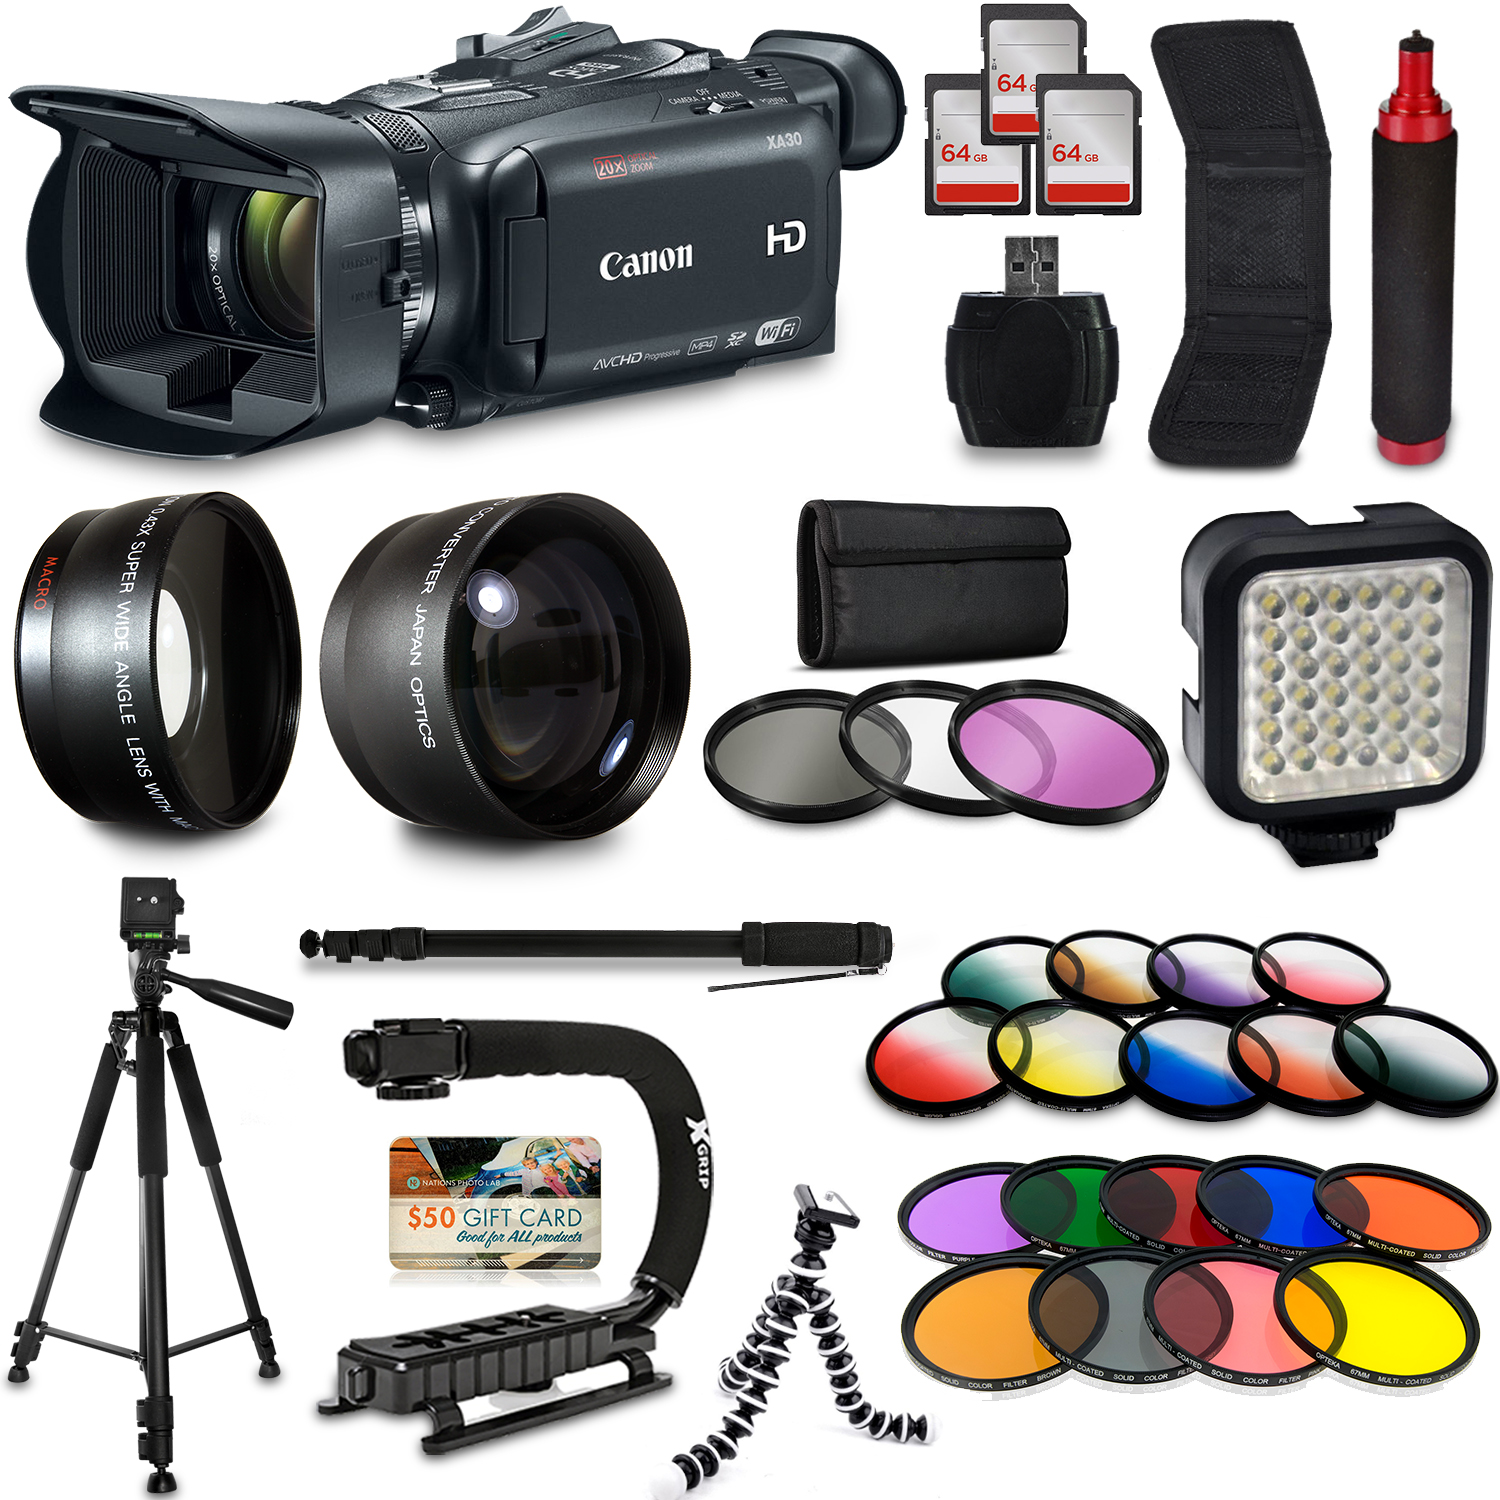 Canon XA30 HD Professional Video Camcorder + Mega Accessory Kit with Macro and Telephoto Lenses + Filters + LED + More CAXA30K9